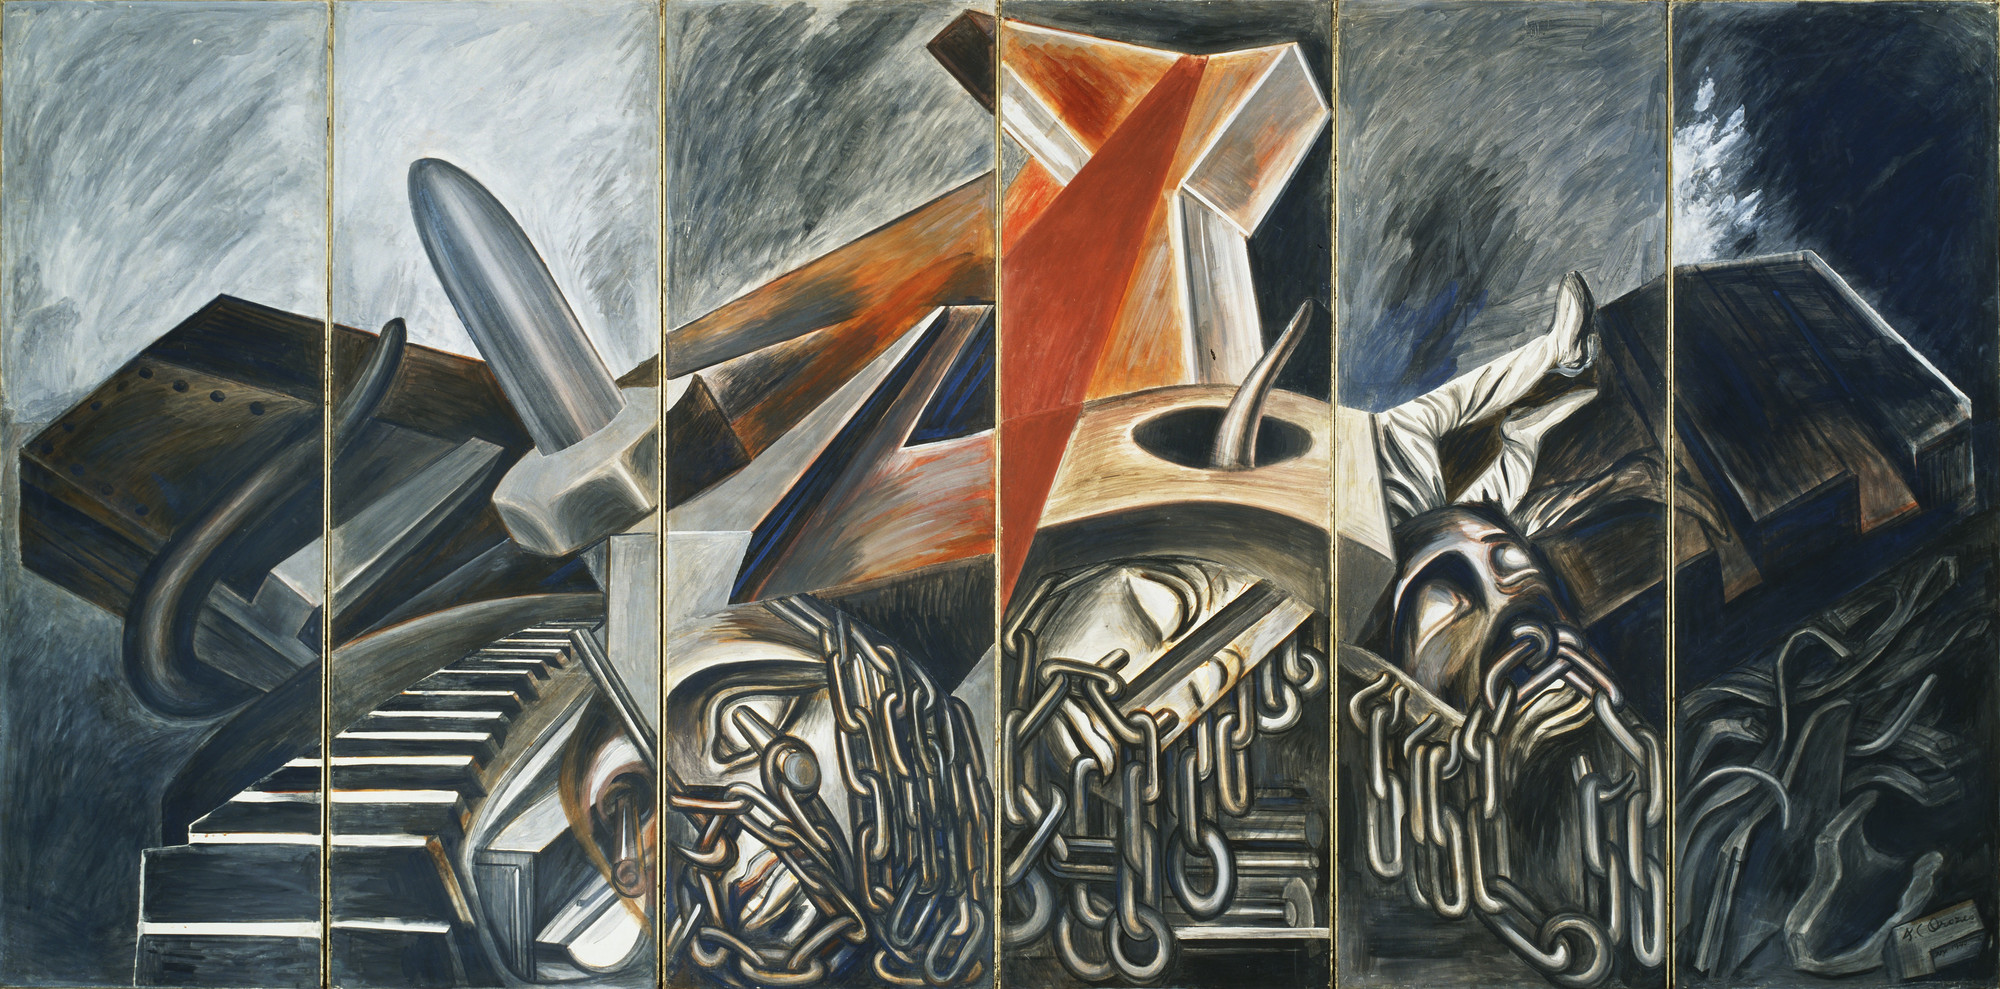 José Clemente Orozco. Dive Bomber and Tank. 1940